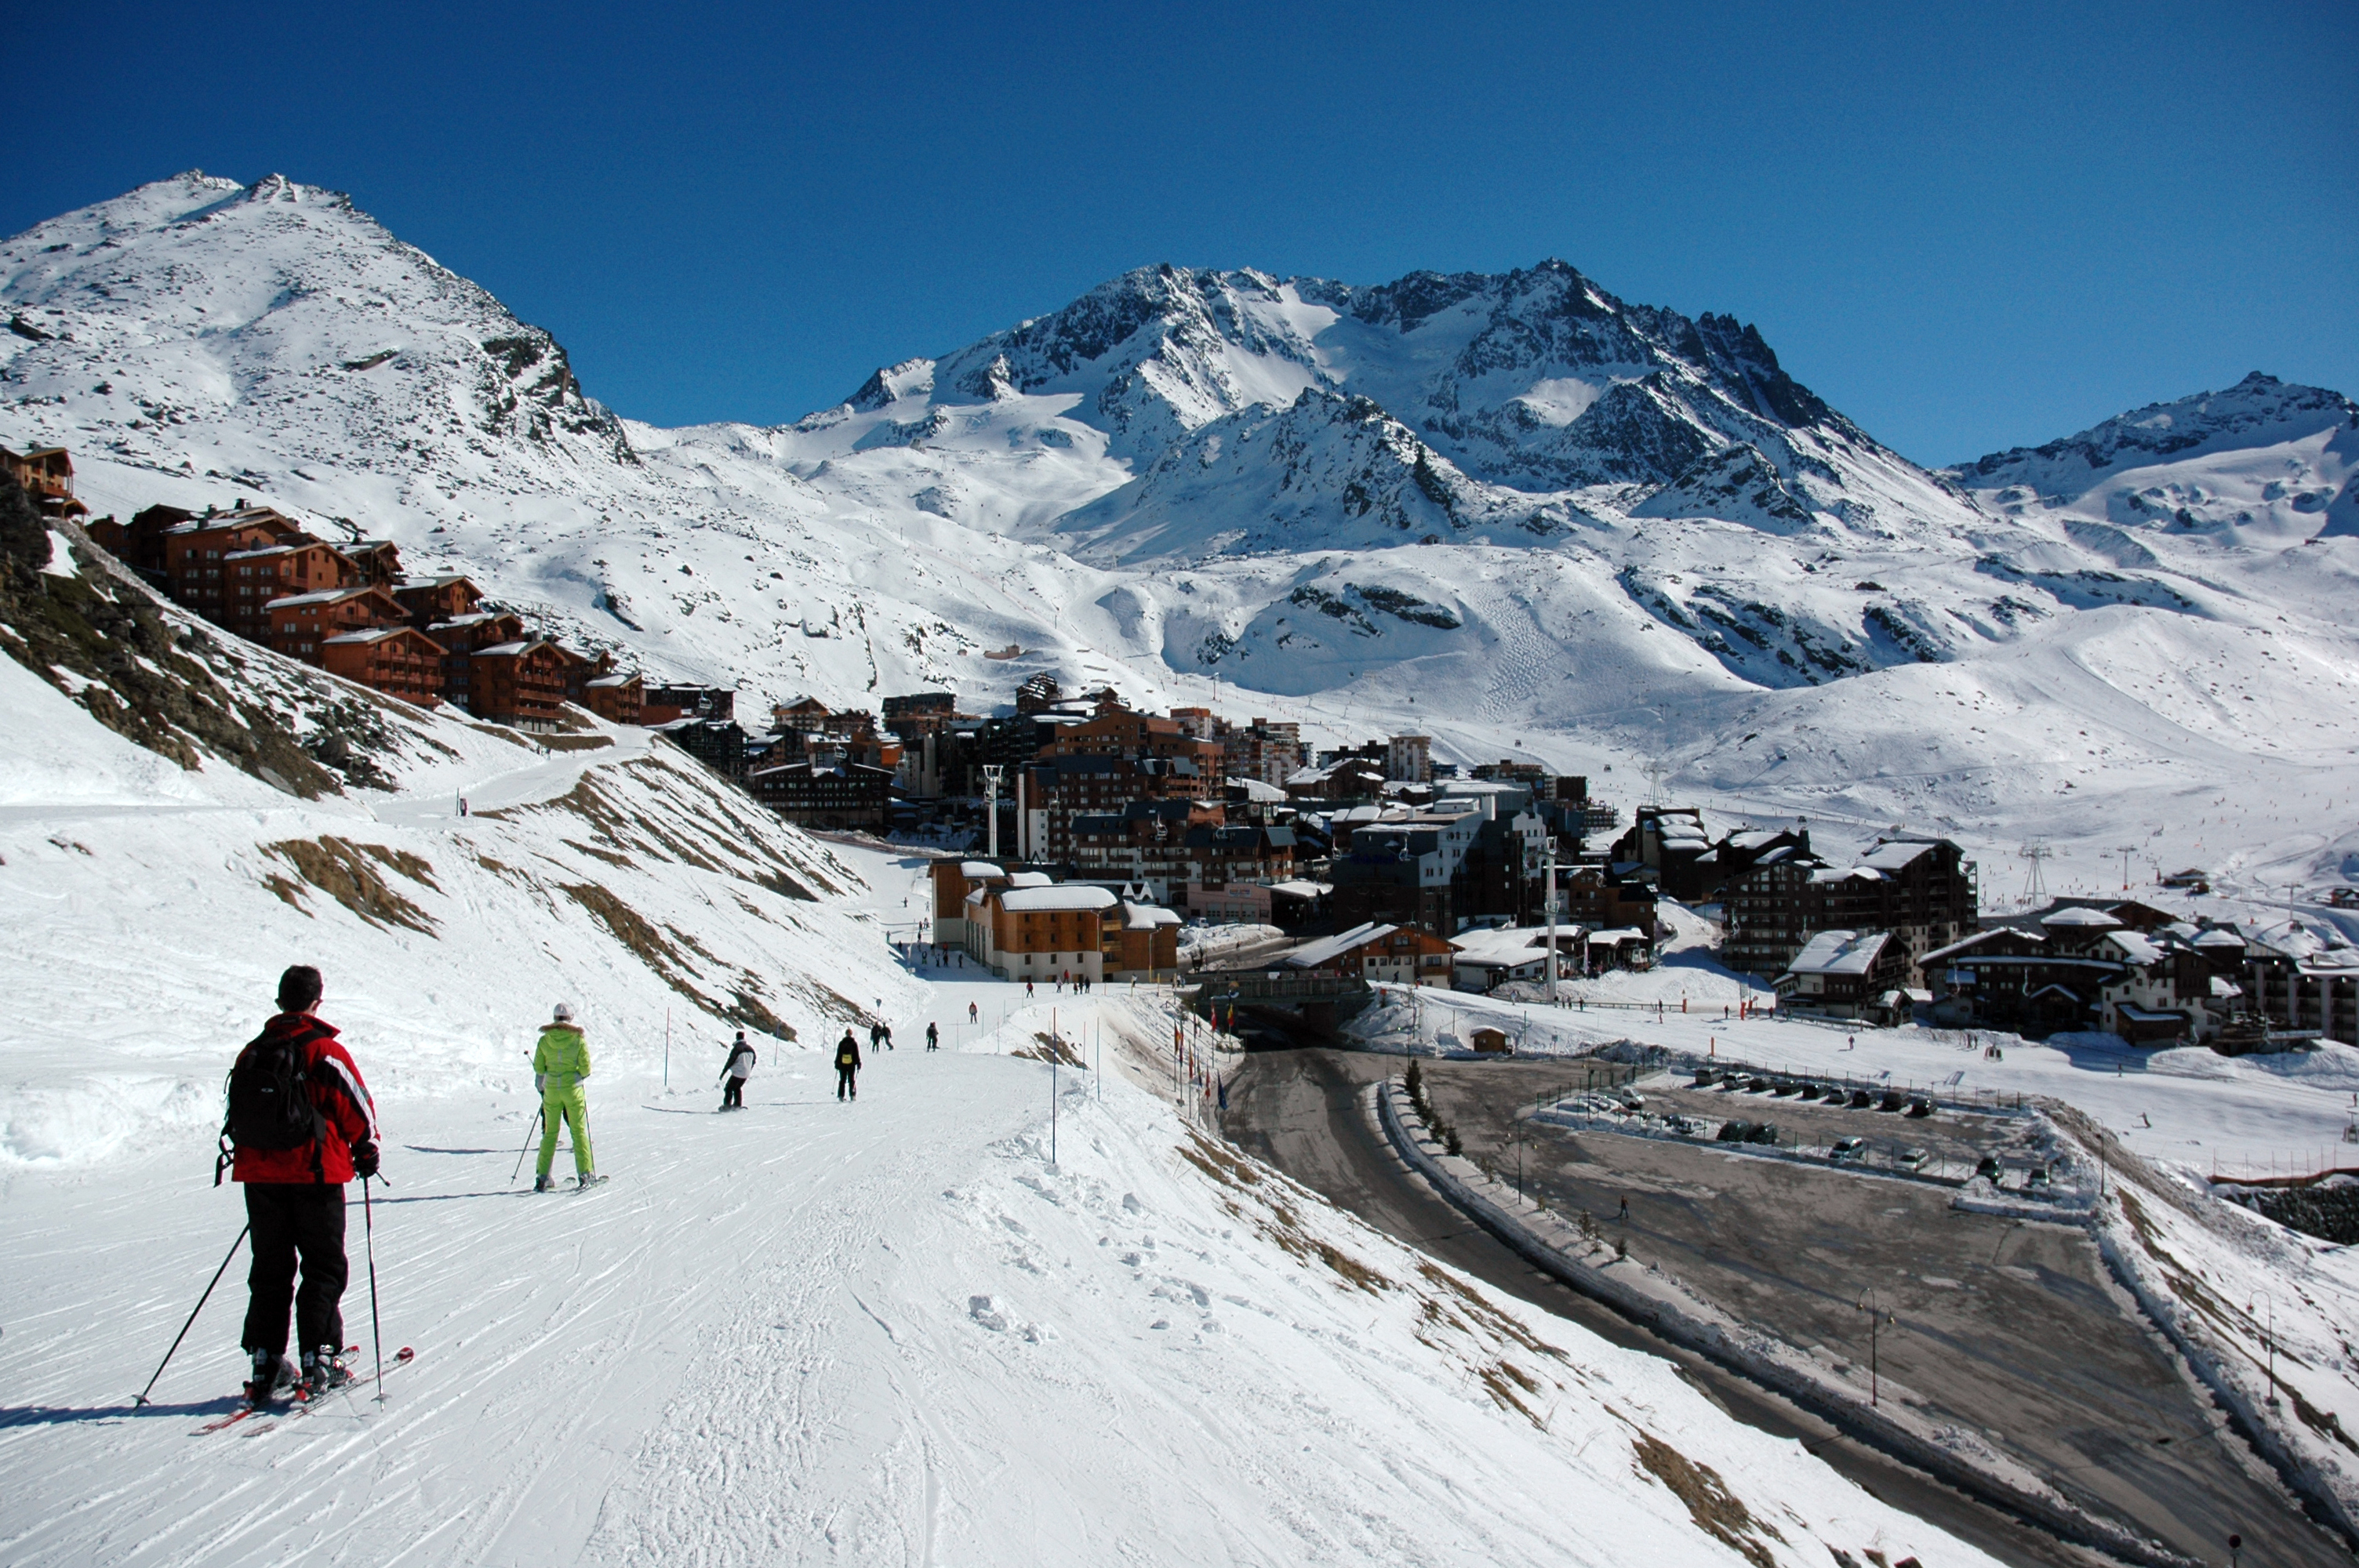 22-year-old student found dead at Val-Thorens